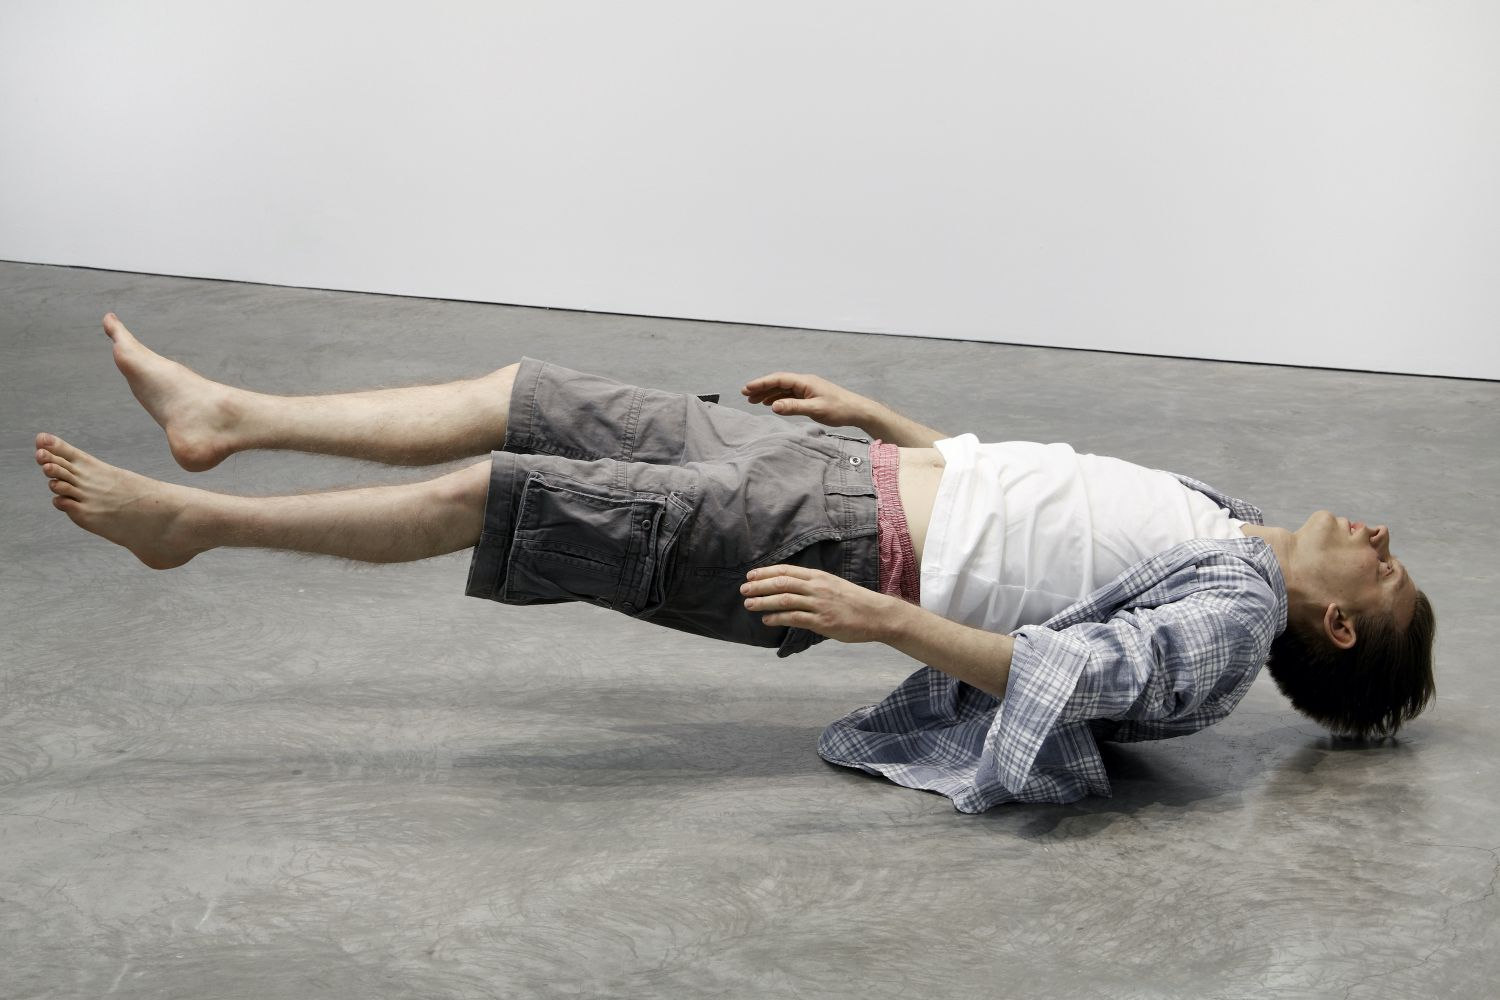 Installation view of a silicone, steel, hair, urethane and clothing sculpture by Tony Matelli featuring a hyper-realistic man levitating